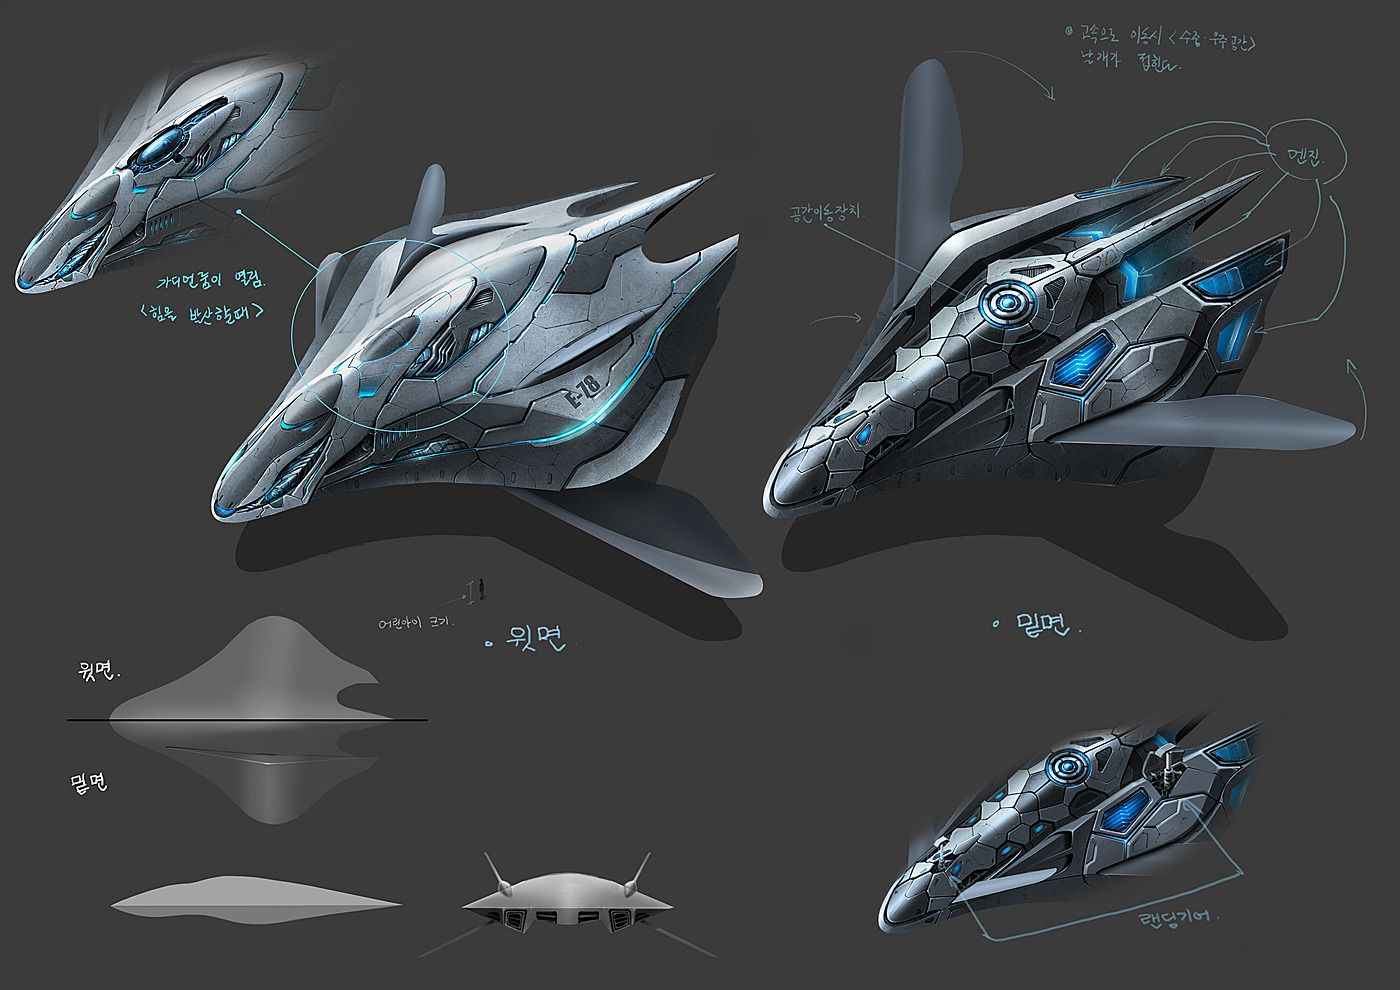 Sci Fi Starships : Sci fi starships pixshark images galleries